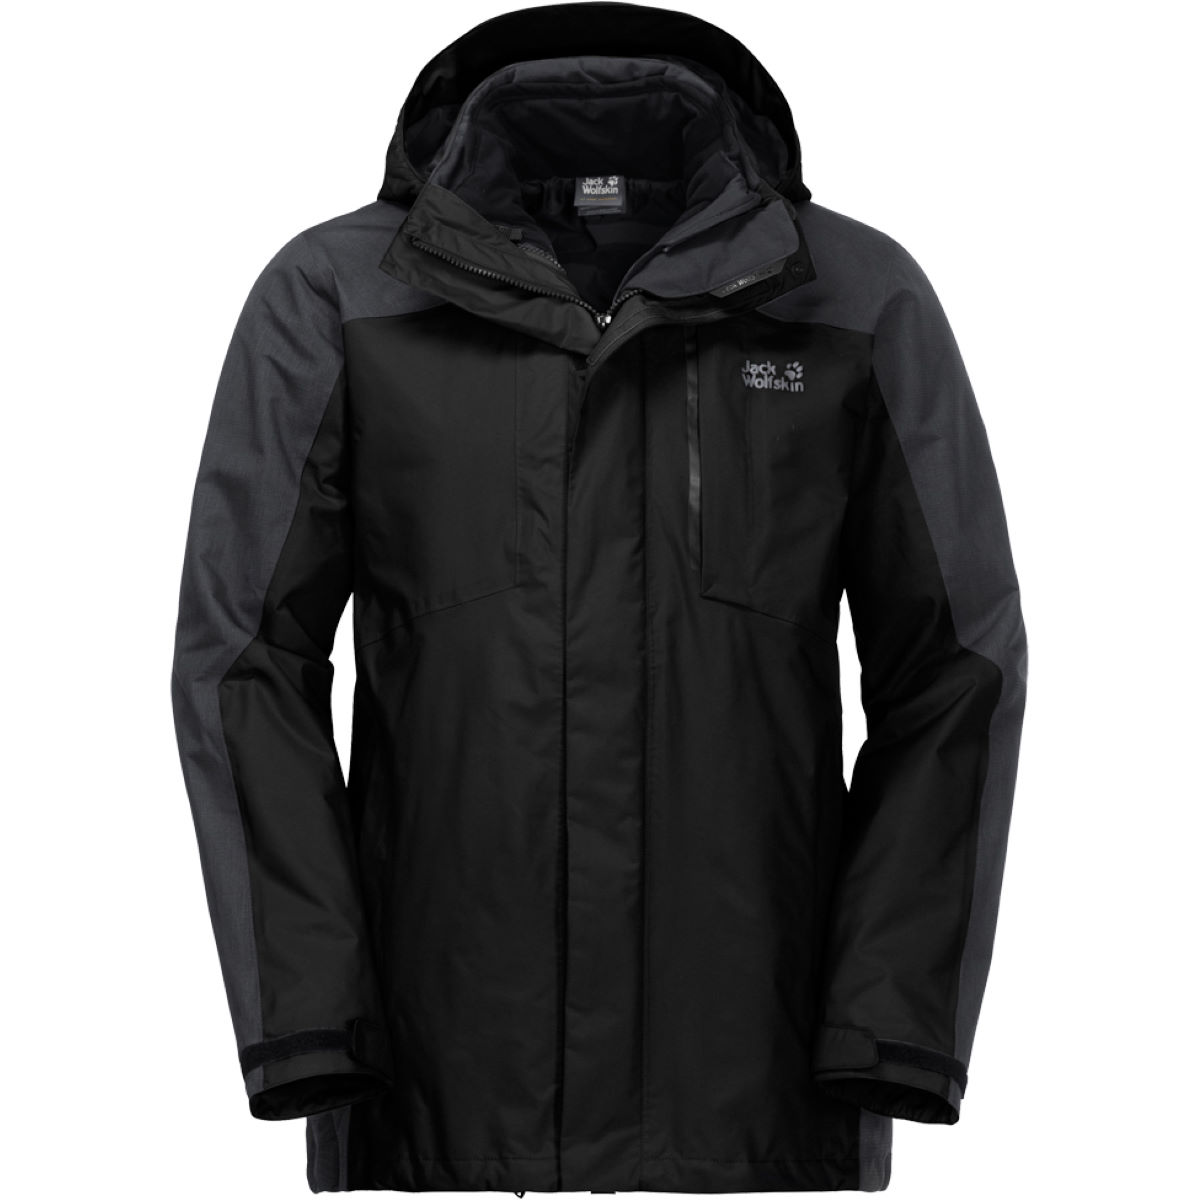 Veste Jack Wolfskin Viking Sky - Medium Black Vestes imperméables